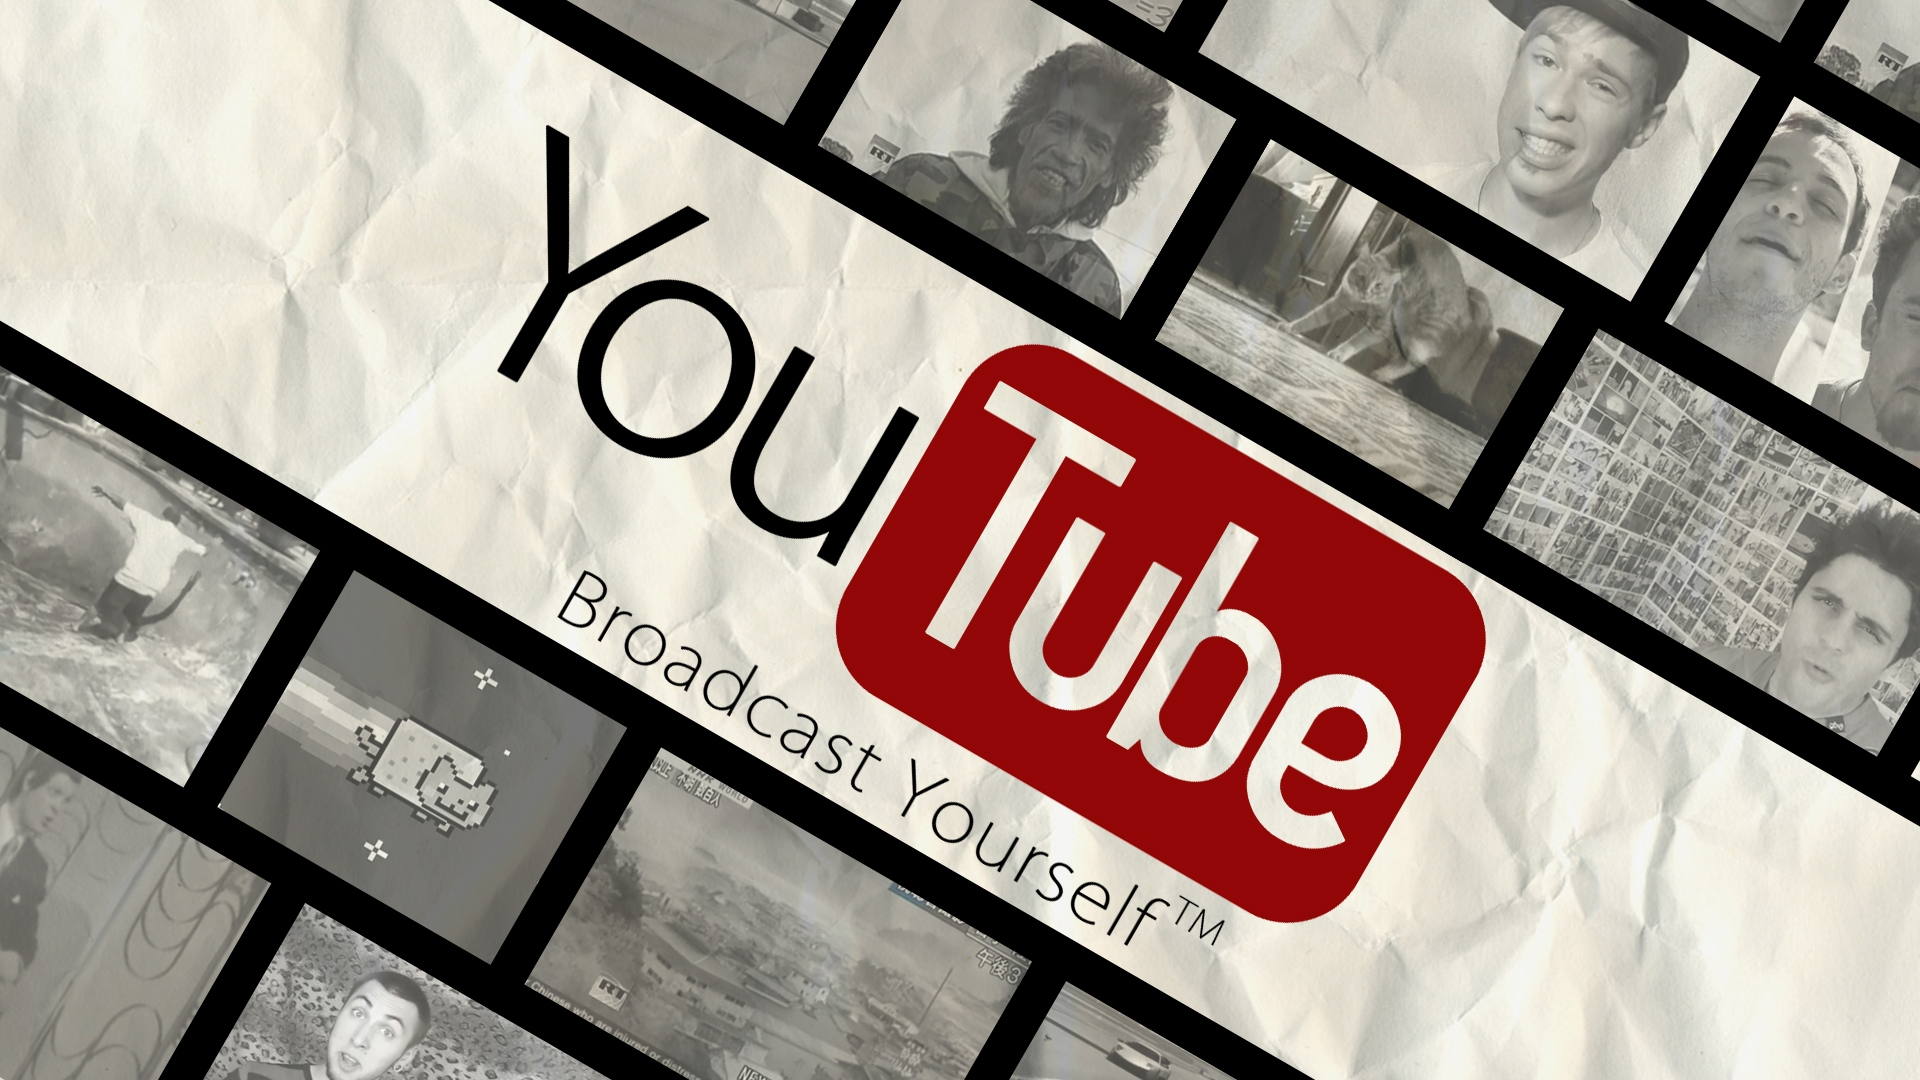 Get The Latest Youtube Video Site News Pictures And Videos Learn All About From Wallpapers4uorg Your Wallpaper Source